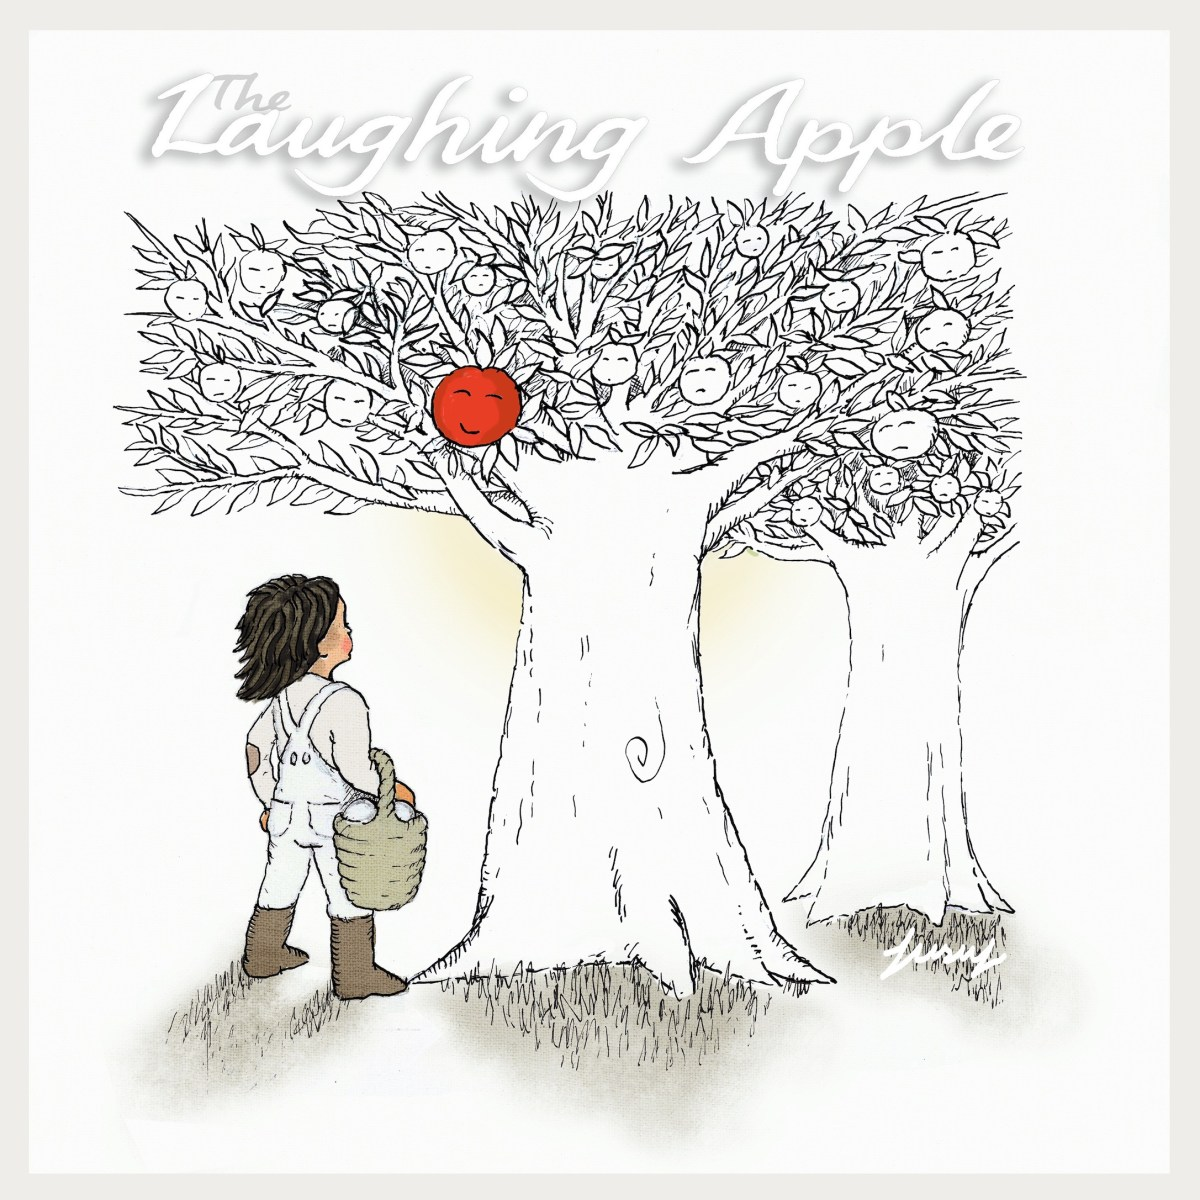 Yusuf / Cat Stevens Announces New Album 'The Laughing Apple'